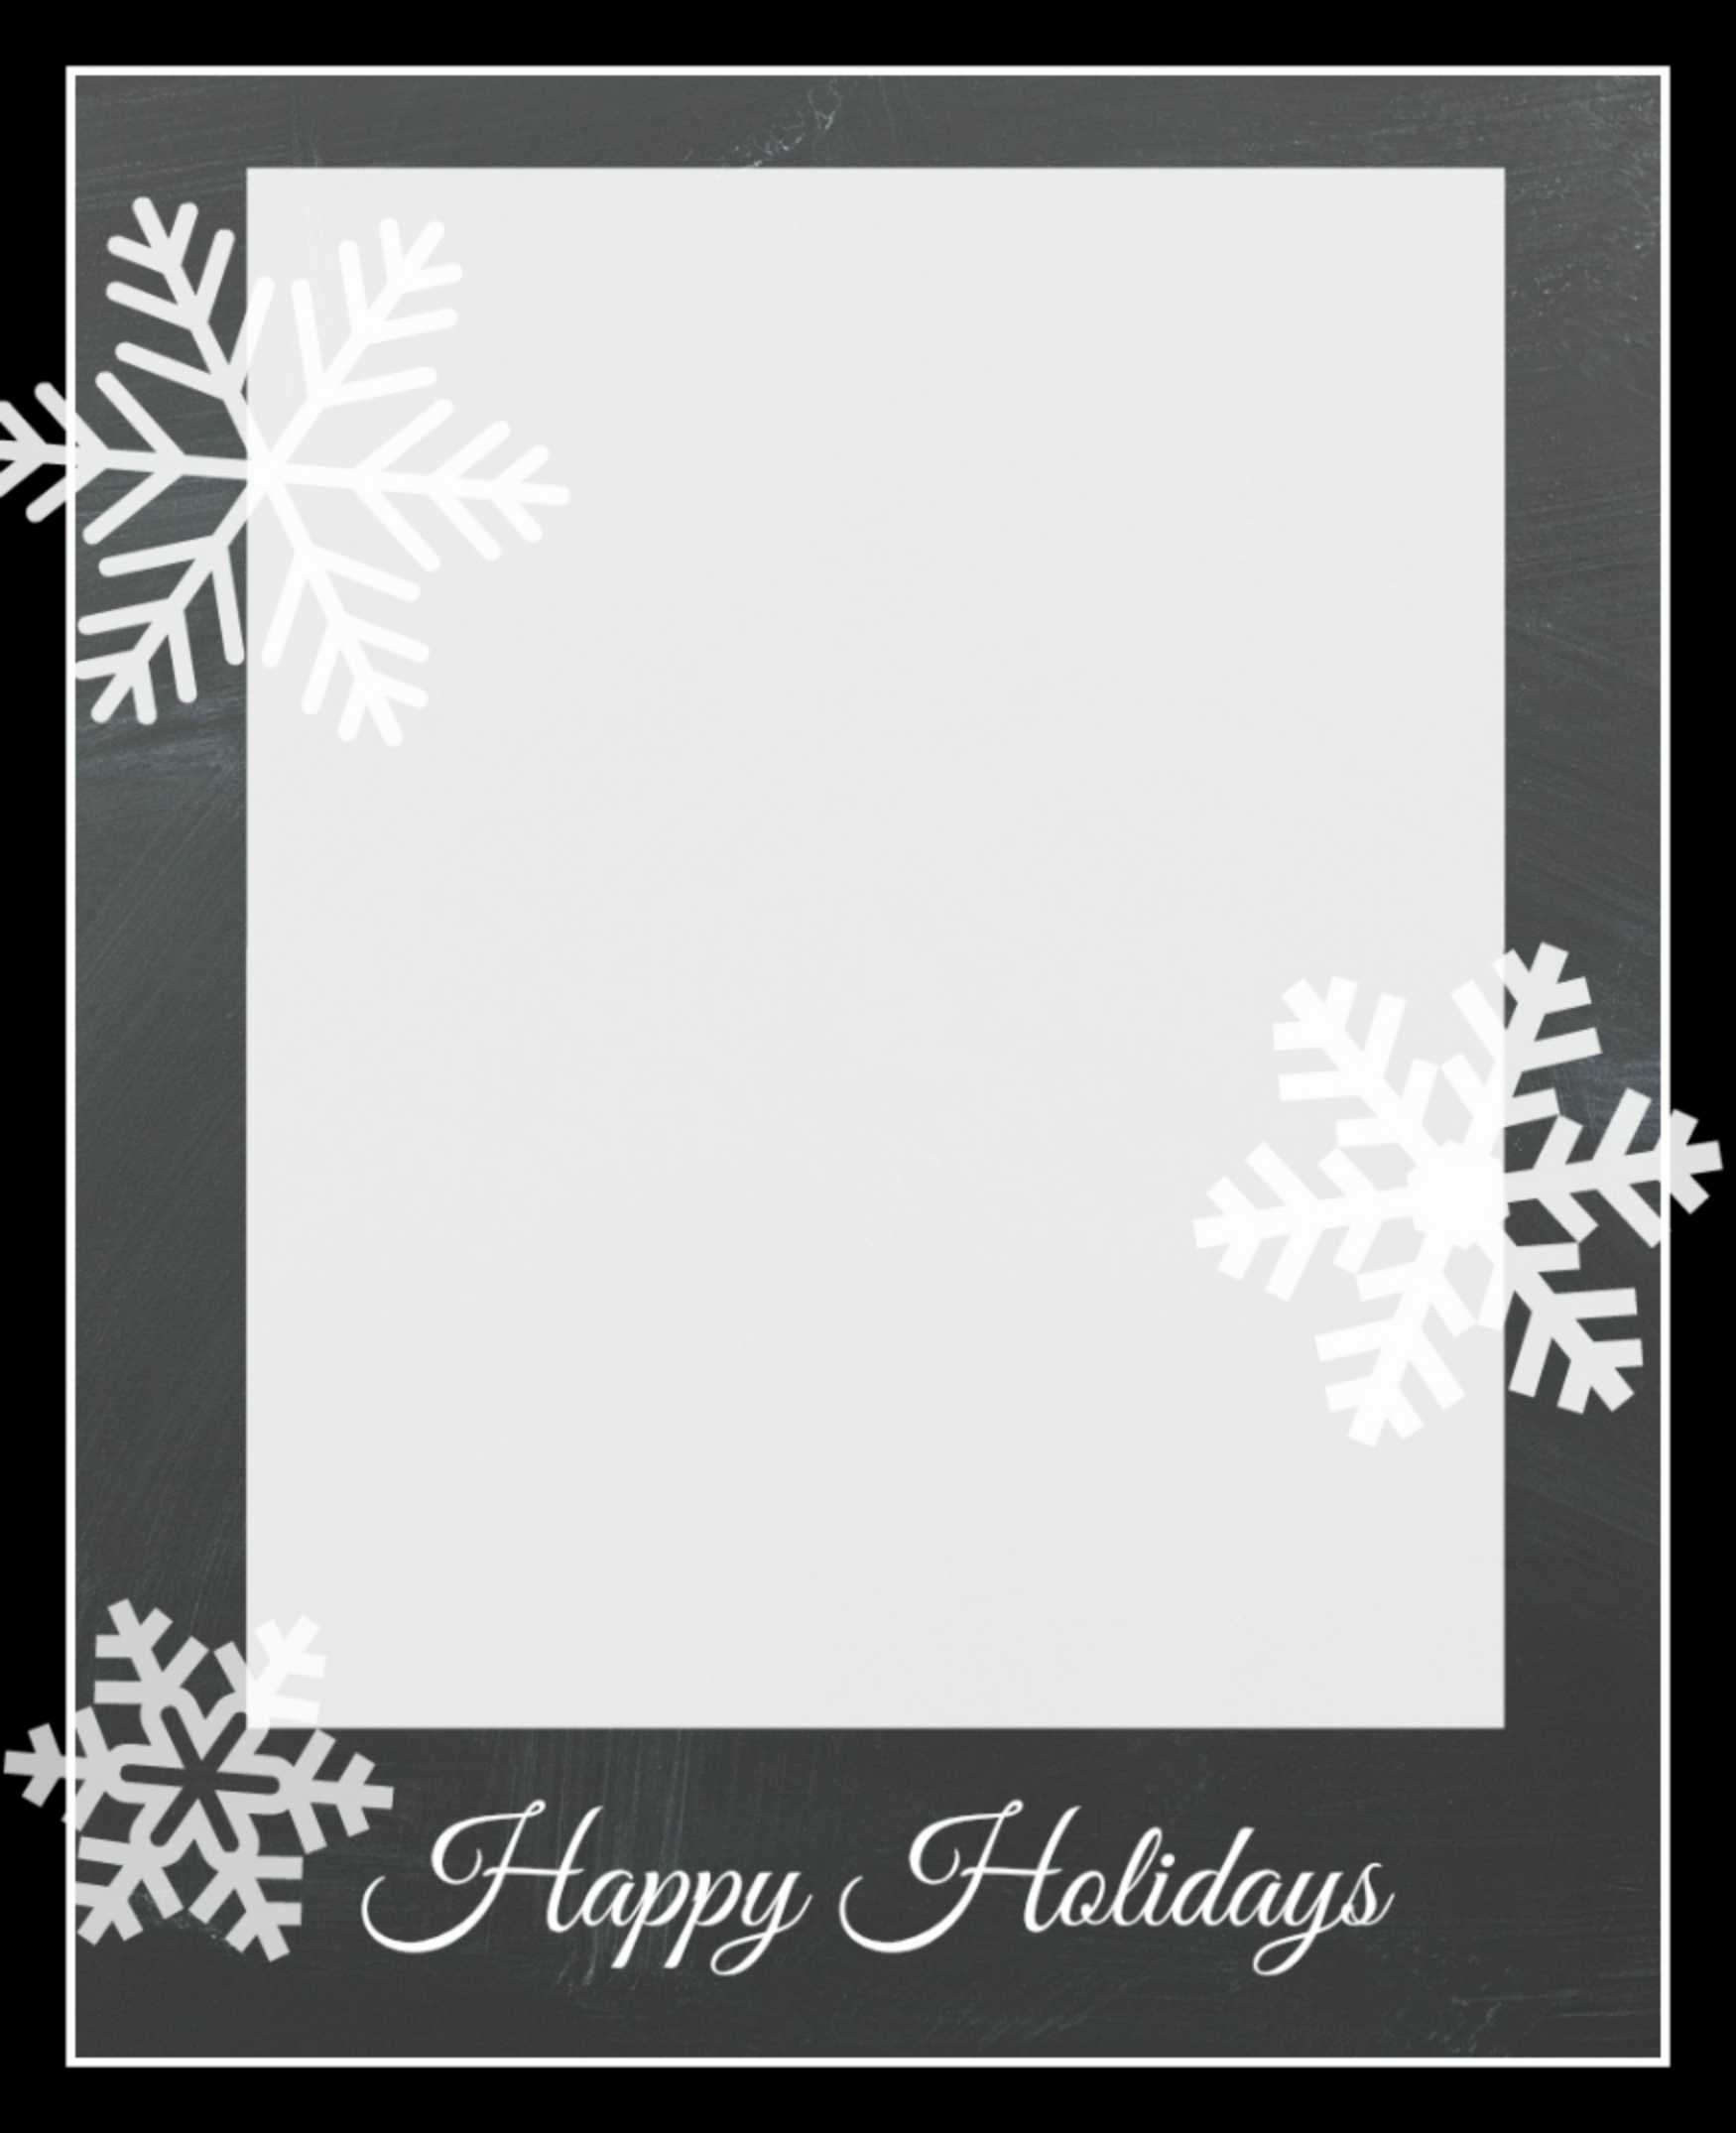 004 Template Ideas Snowflakecard3 Christmas Photo Card Best intended for Free Holiday Photo Card Templates